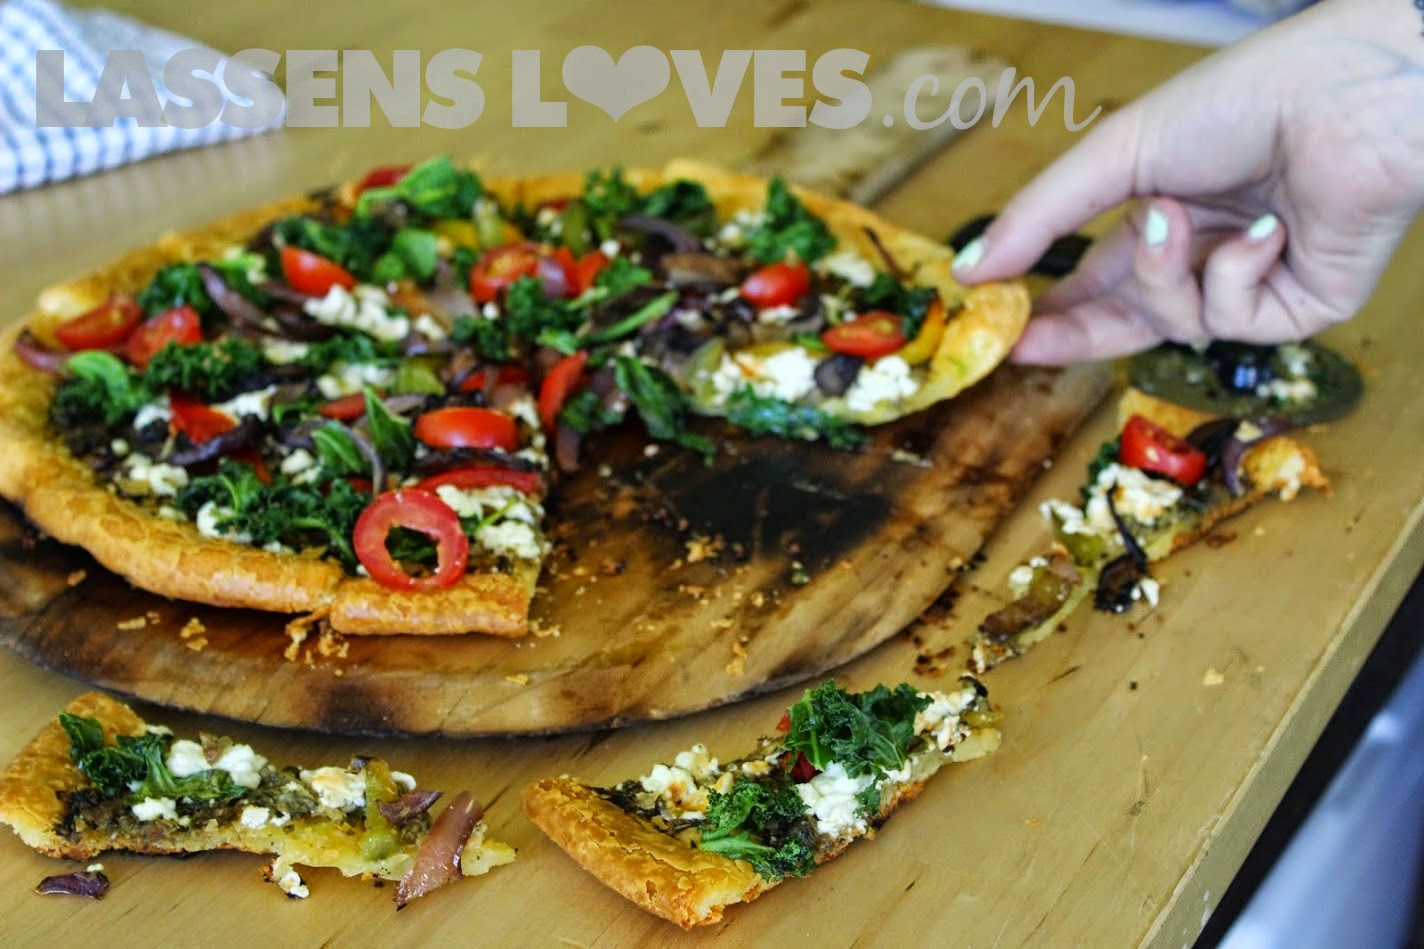 veggie+pizza, guilt+free+pizza, gluten+free+pizza, pizza+recipes